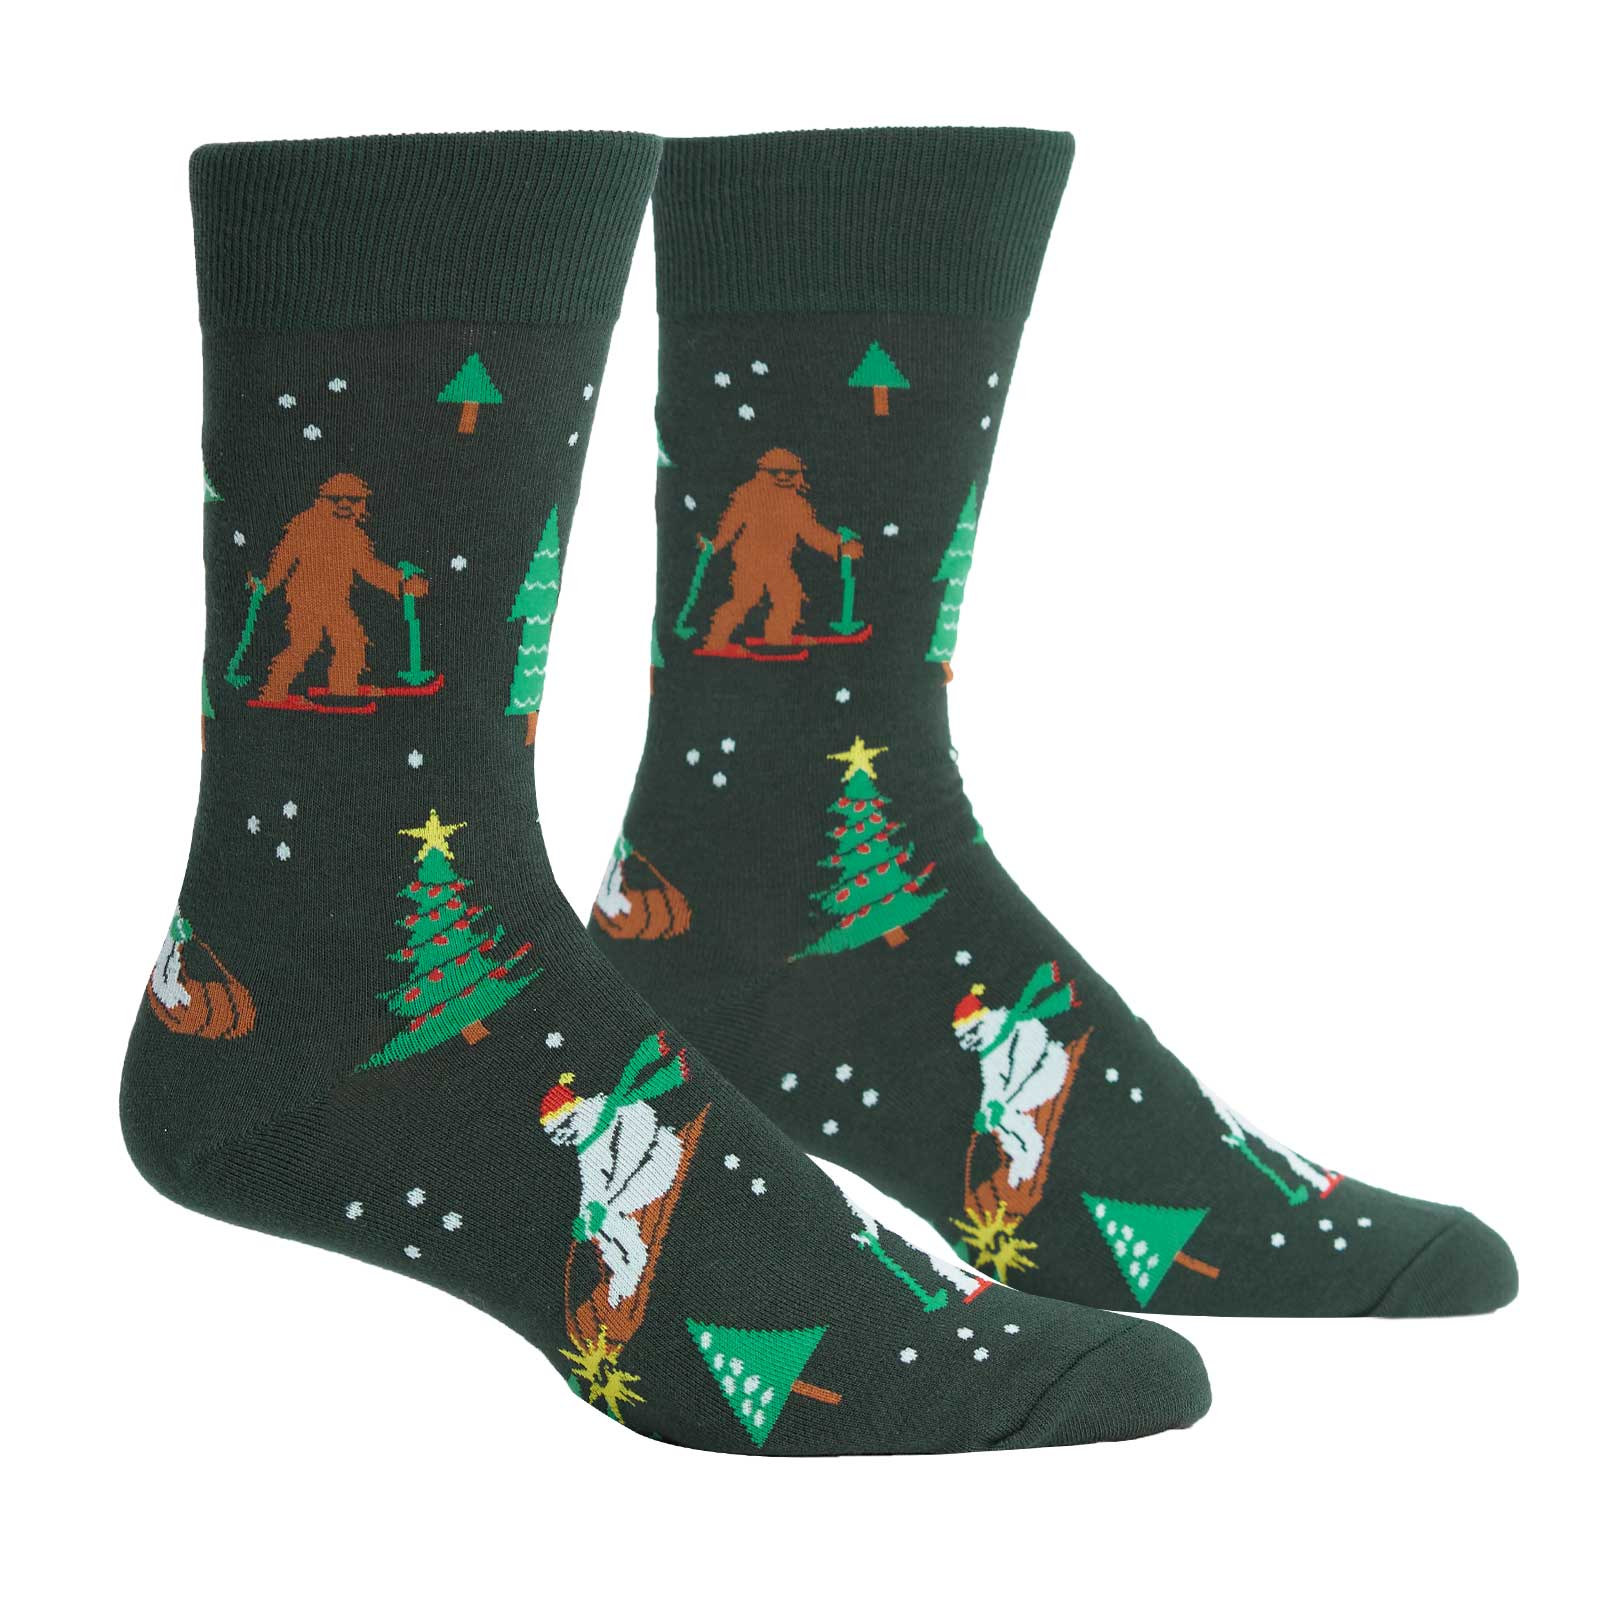 sasquatch and yetis ski on these funny christmaswinter socks for men